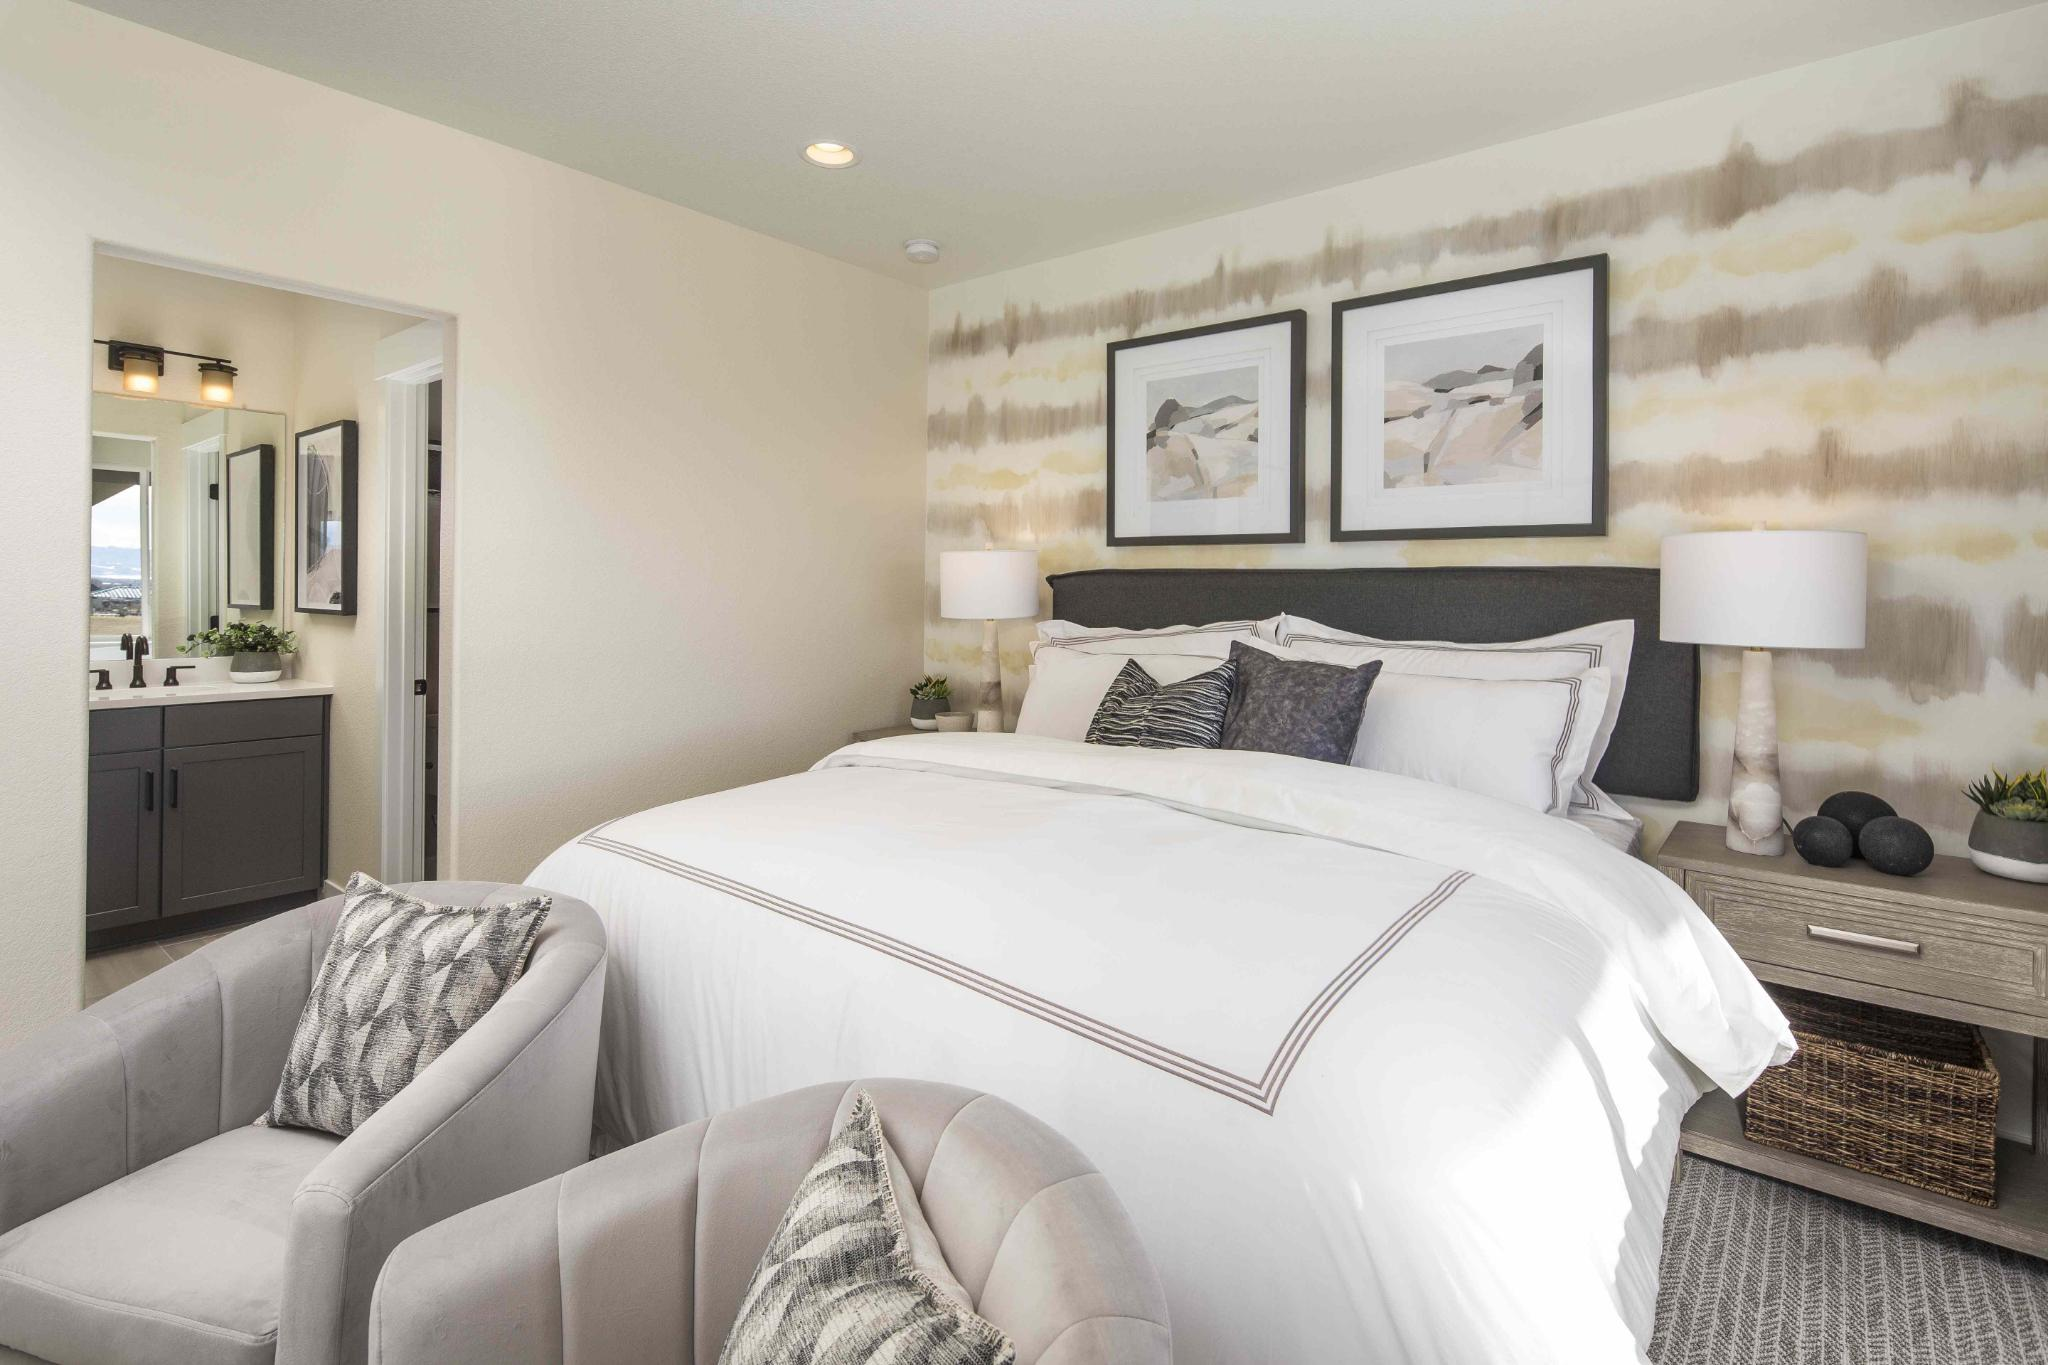 Bedroom featured in the Plan C652 By American Legend Homes in Fort Collins-Loveland, CO